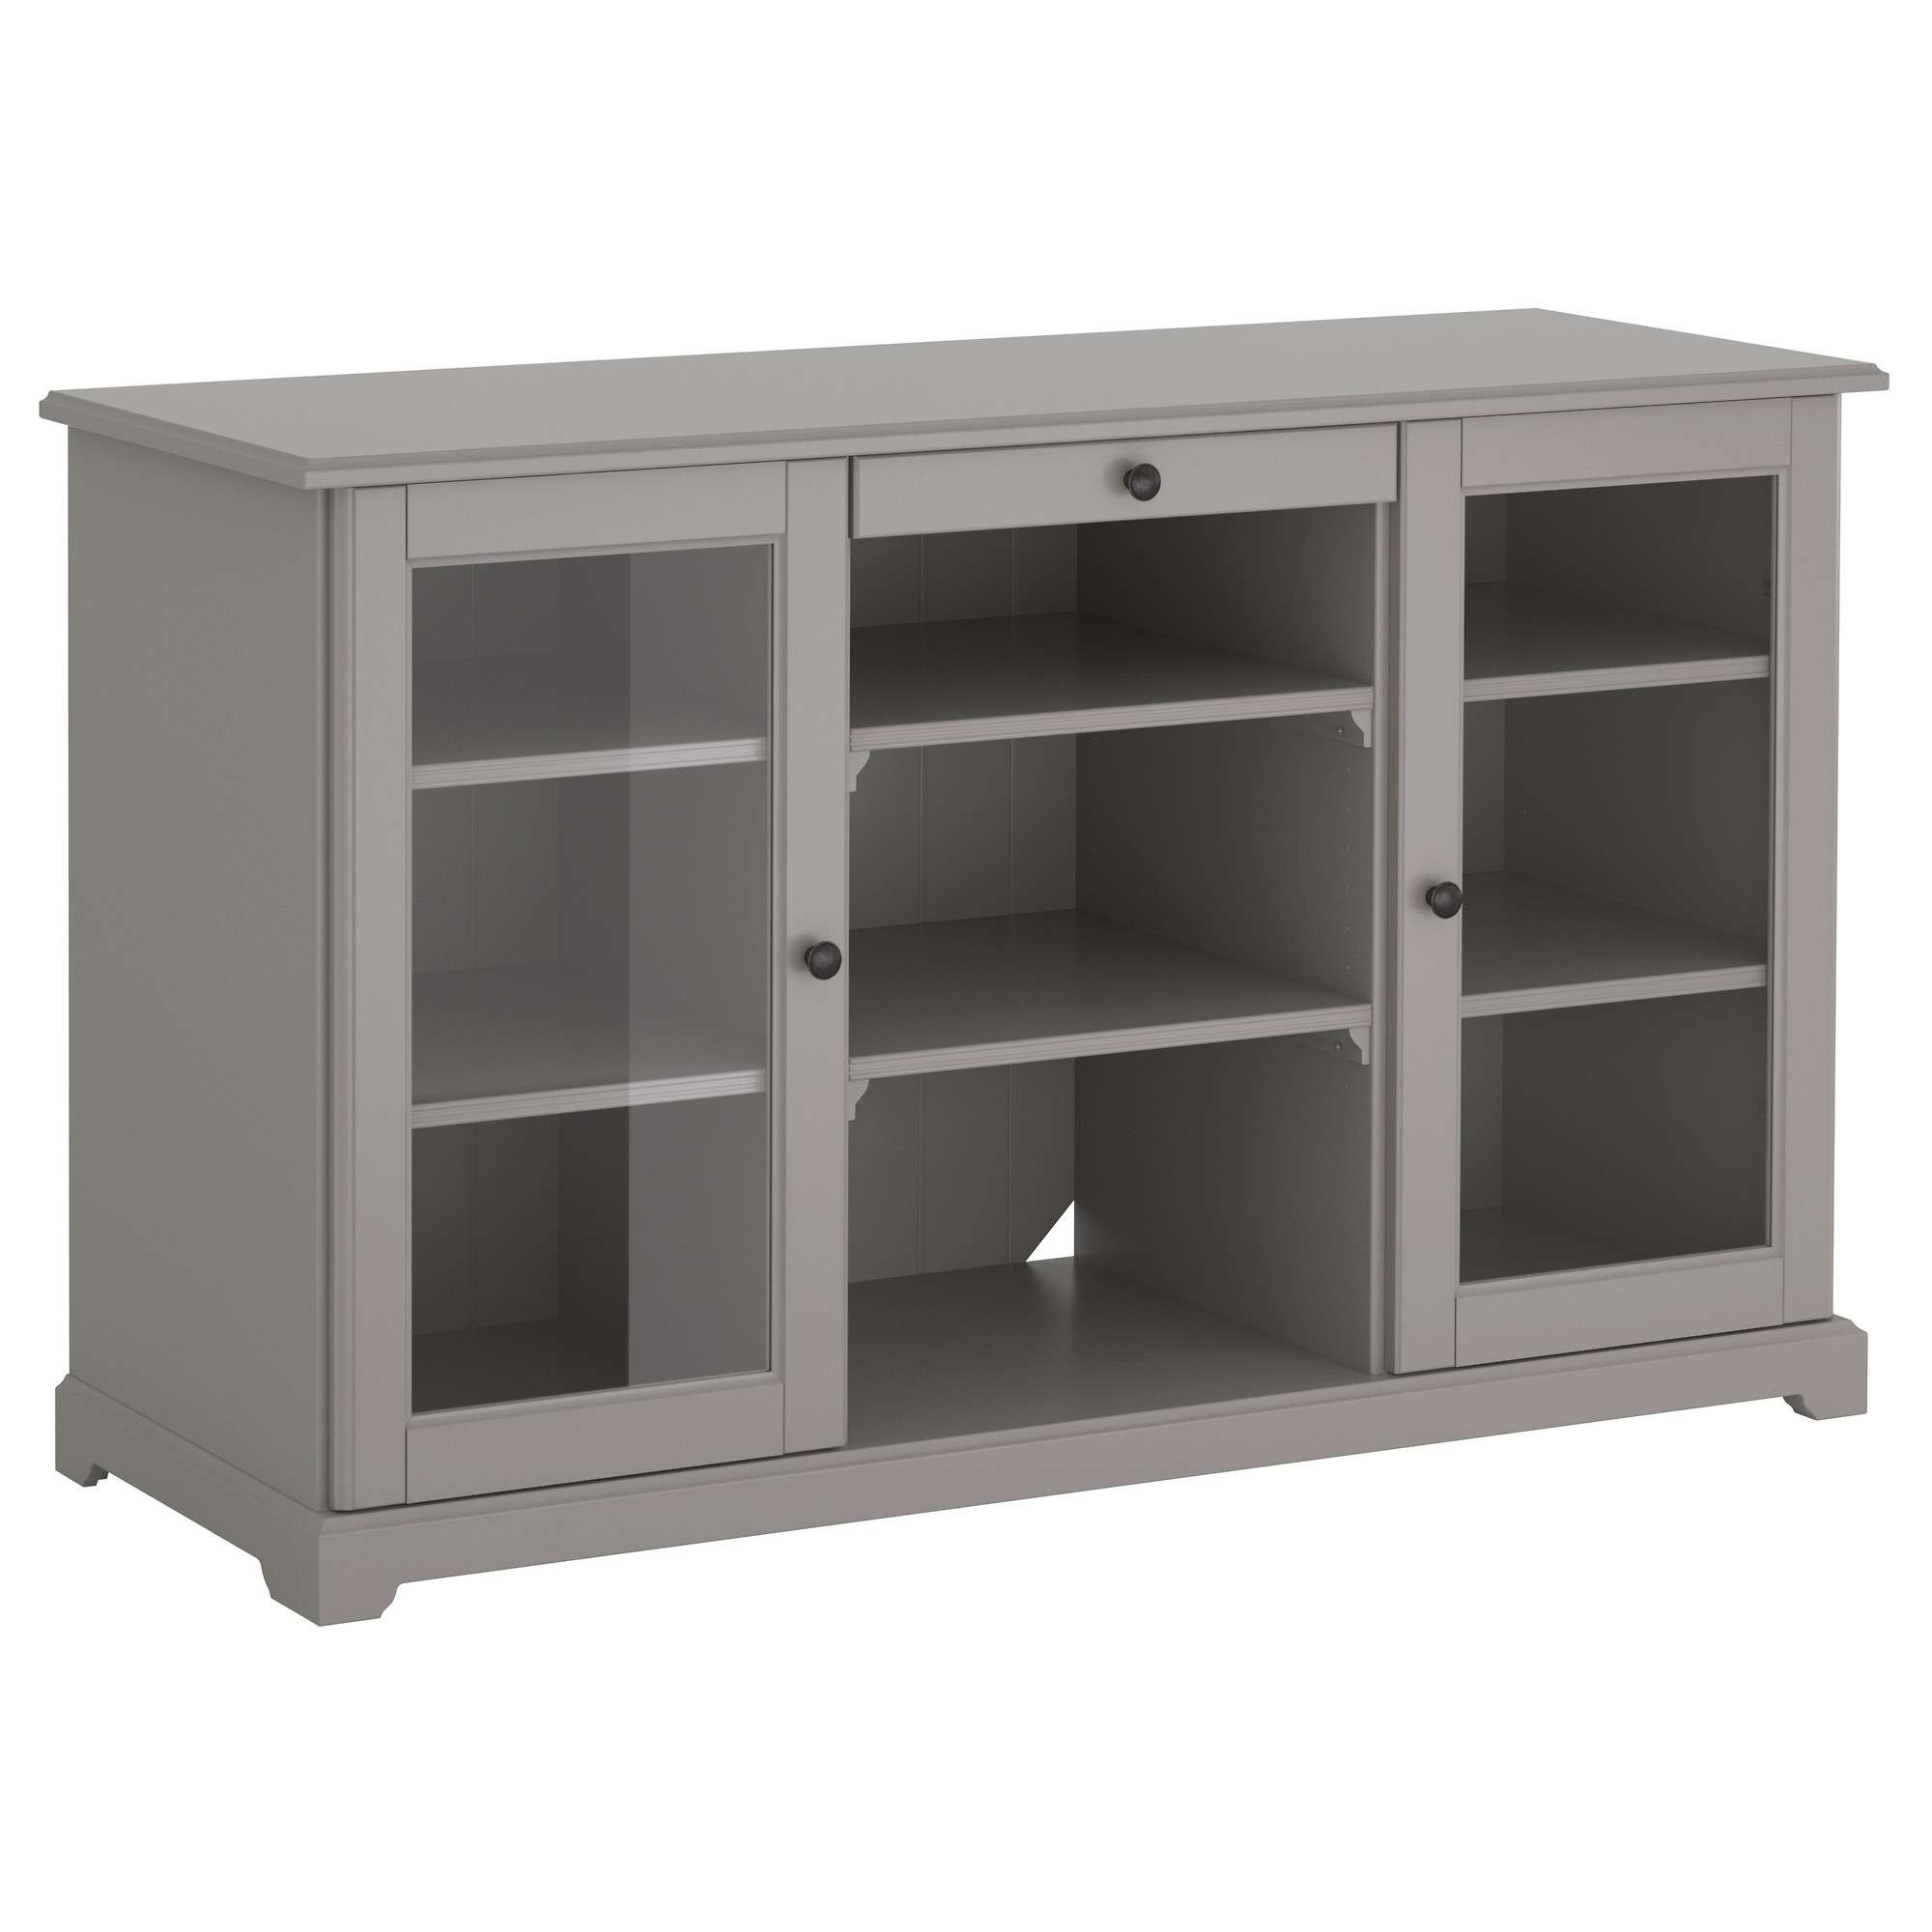 Liatorp Sideboard Grey 145X87 Cm – Ikea For Grey Sideboards (View 9 of 20)